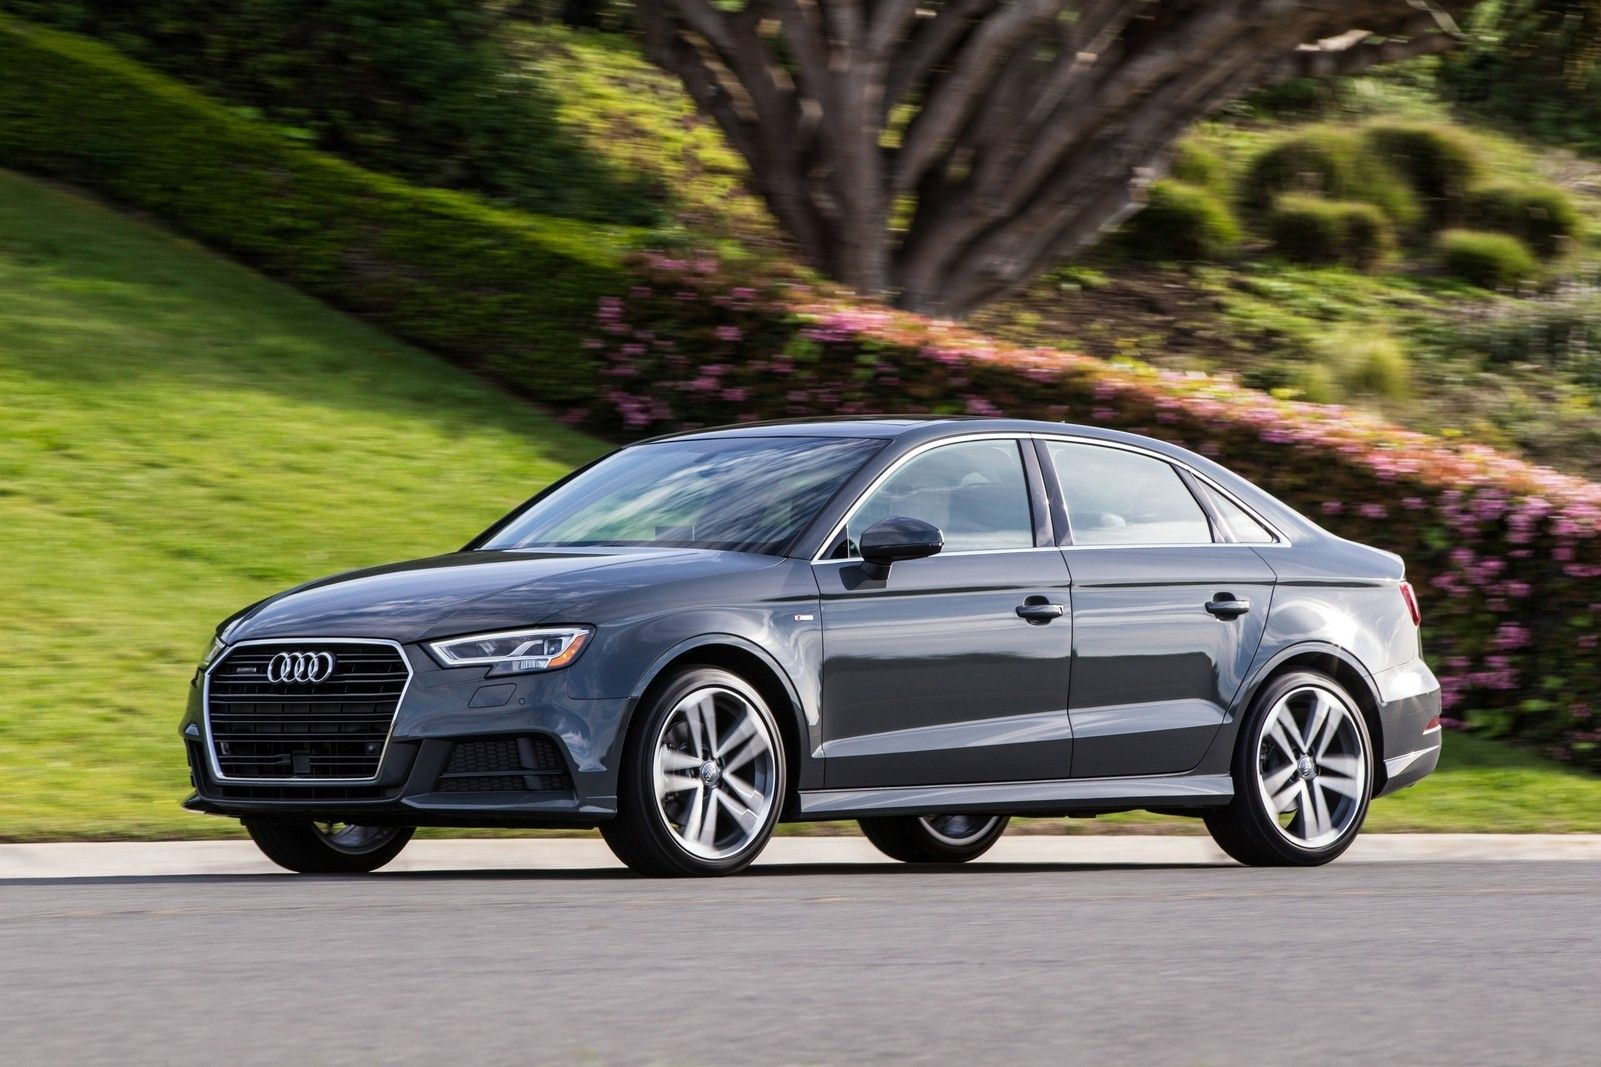 Audi A3 2018 Named Best Luxury Small Car For The Money By Audi A3 Sedan Best Luxury Cars Best Luxury Sports Car